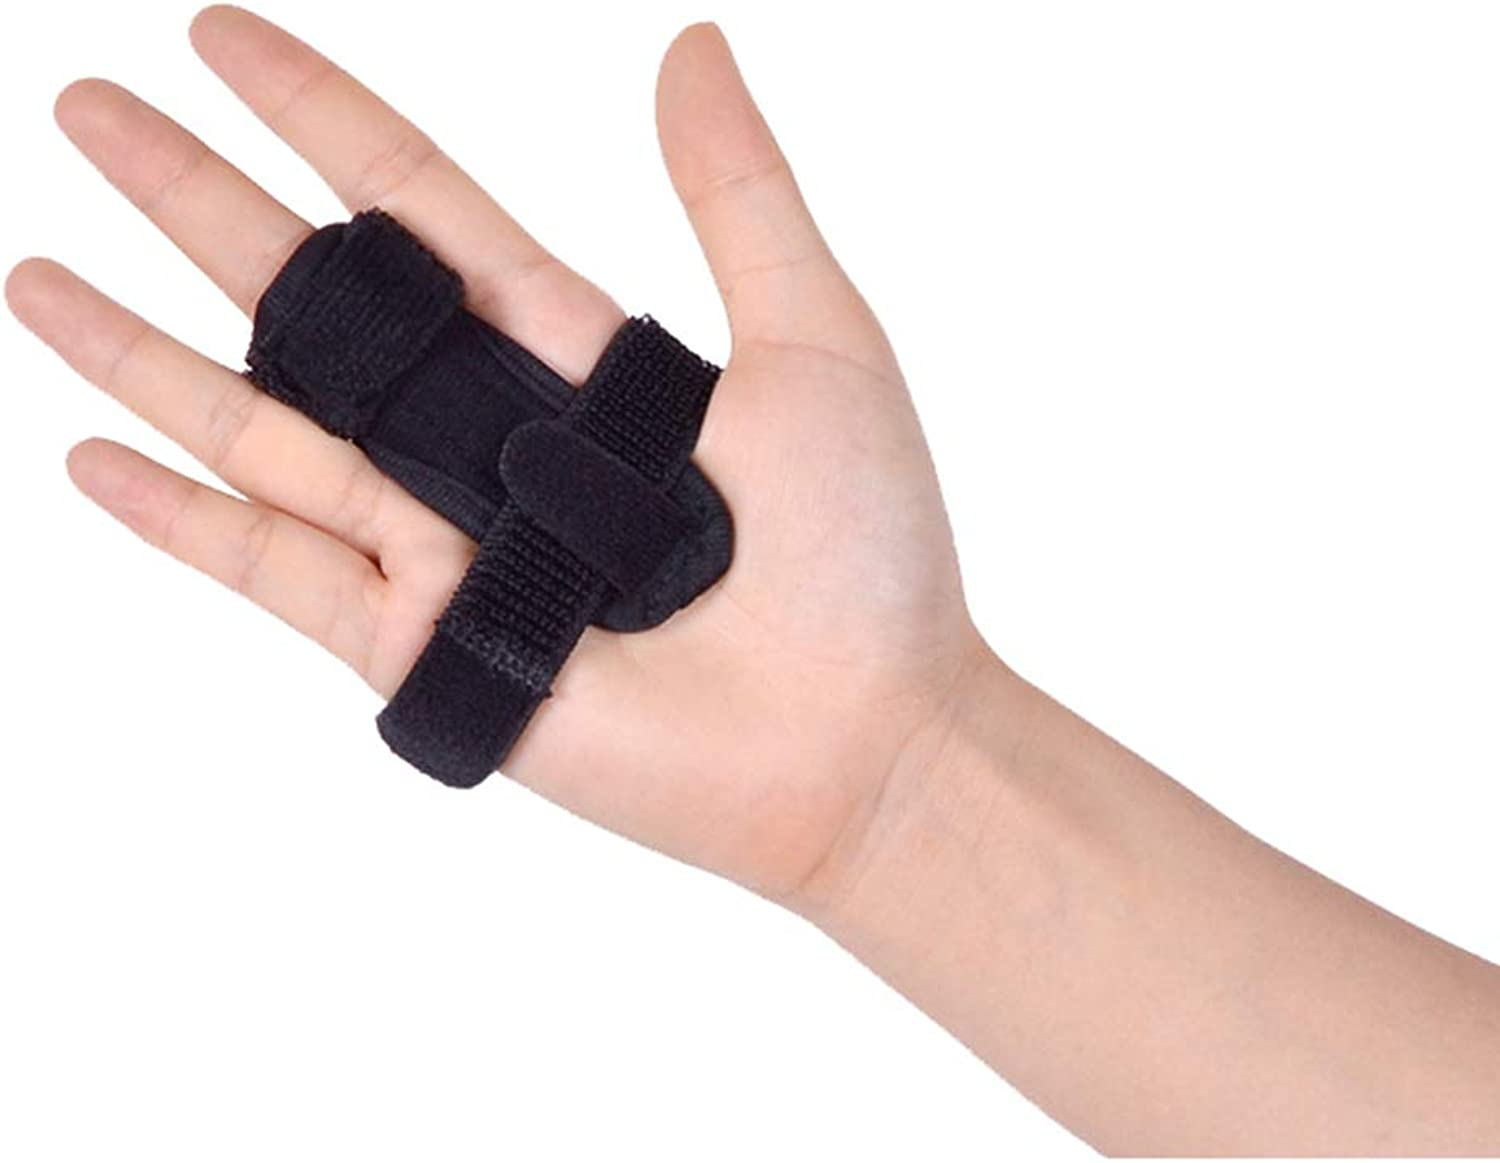 Finger Clip, Aluminum Alloy, One Size, Breathable Section, Suitble for Finger Fracture Fixed Injured Finger Predection,Black